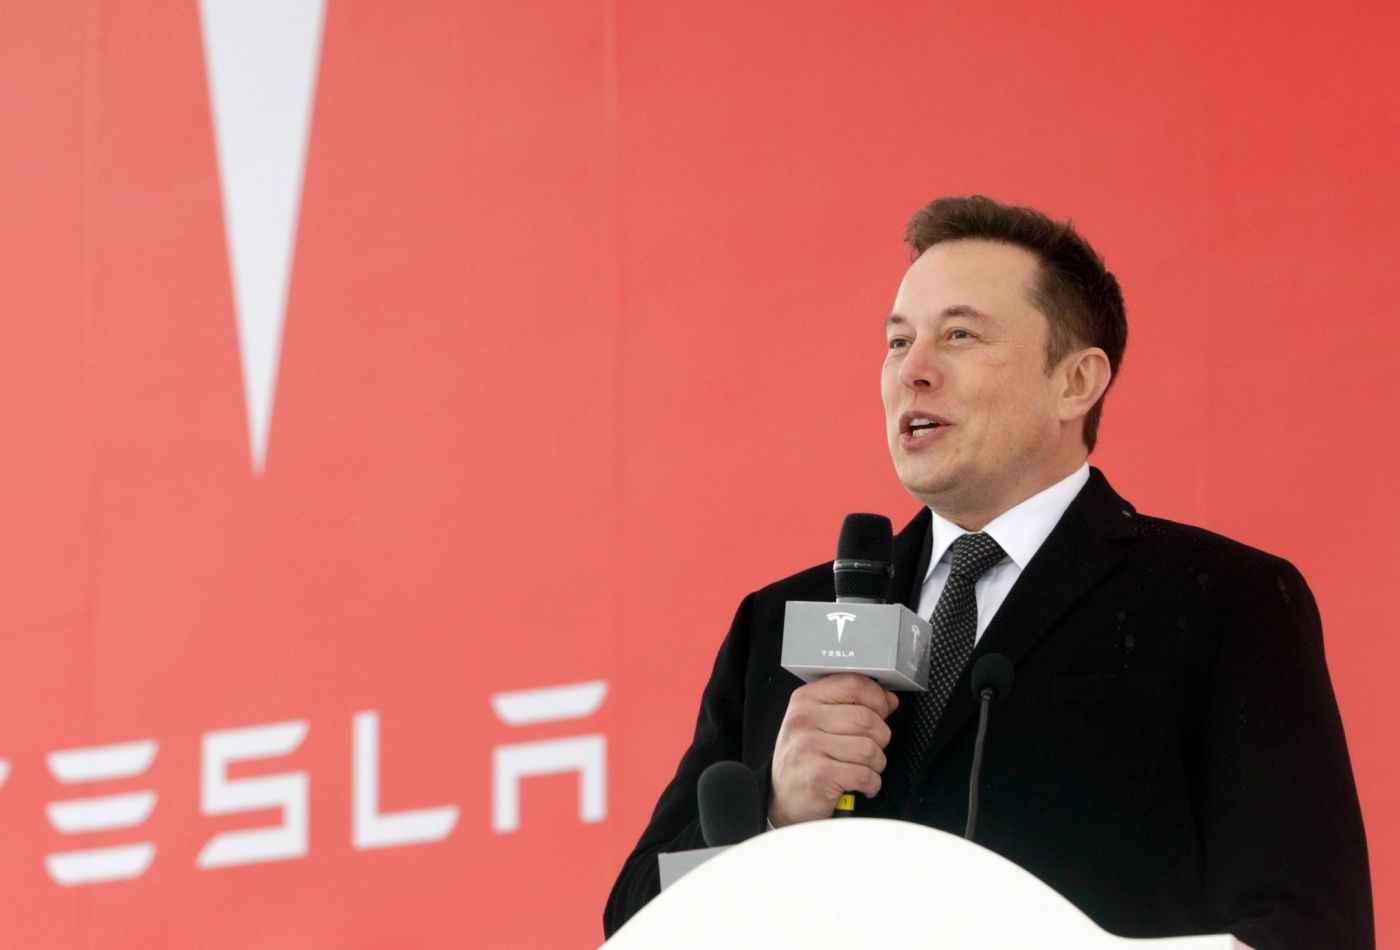 Elon Musk told this Reddit user they 'should interview at Tesla